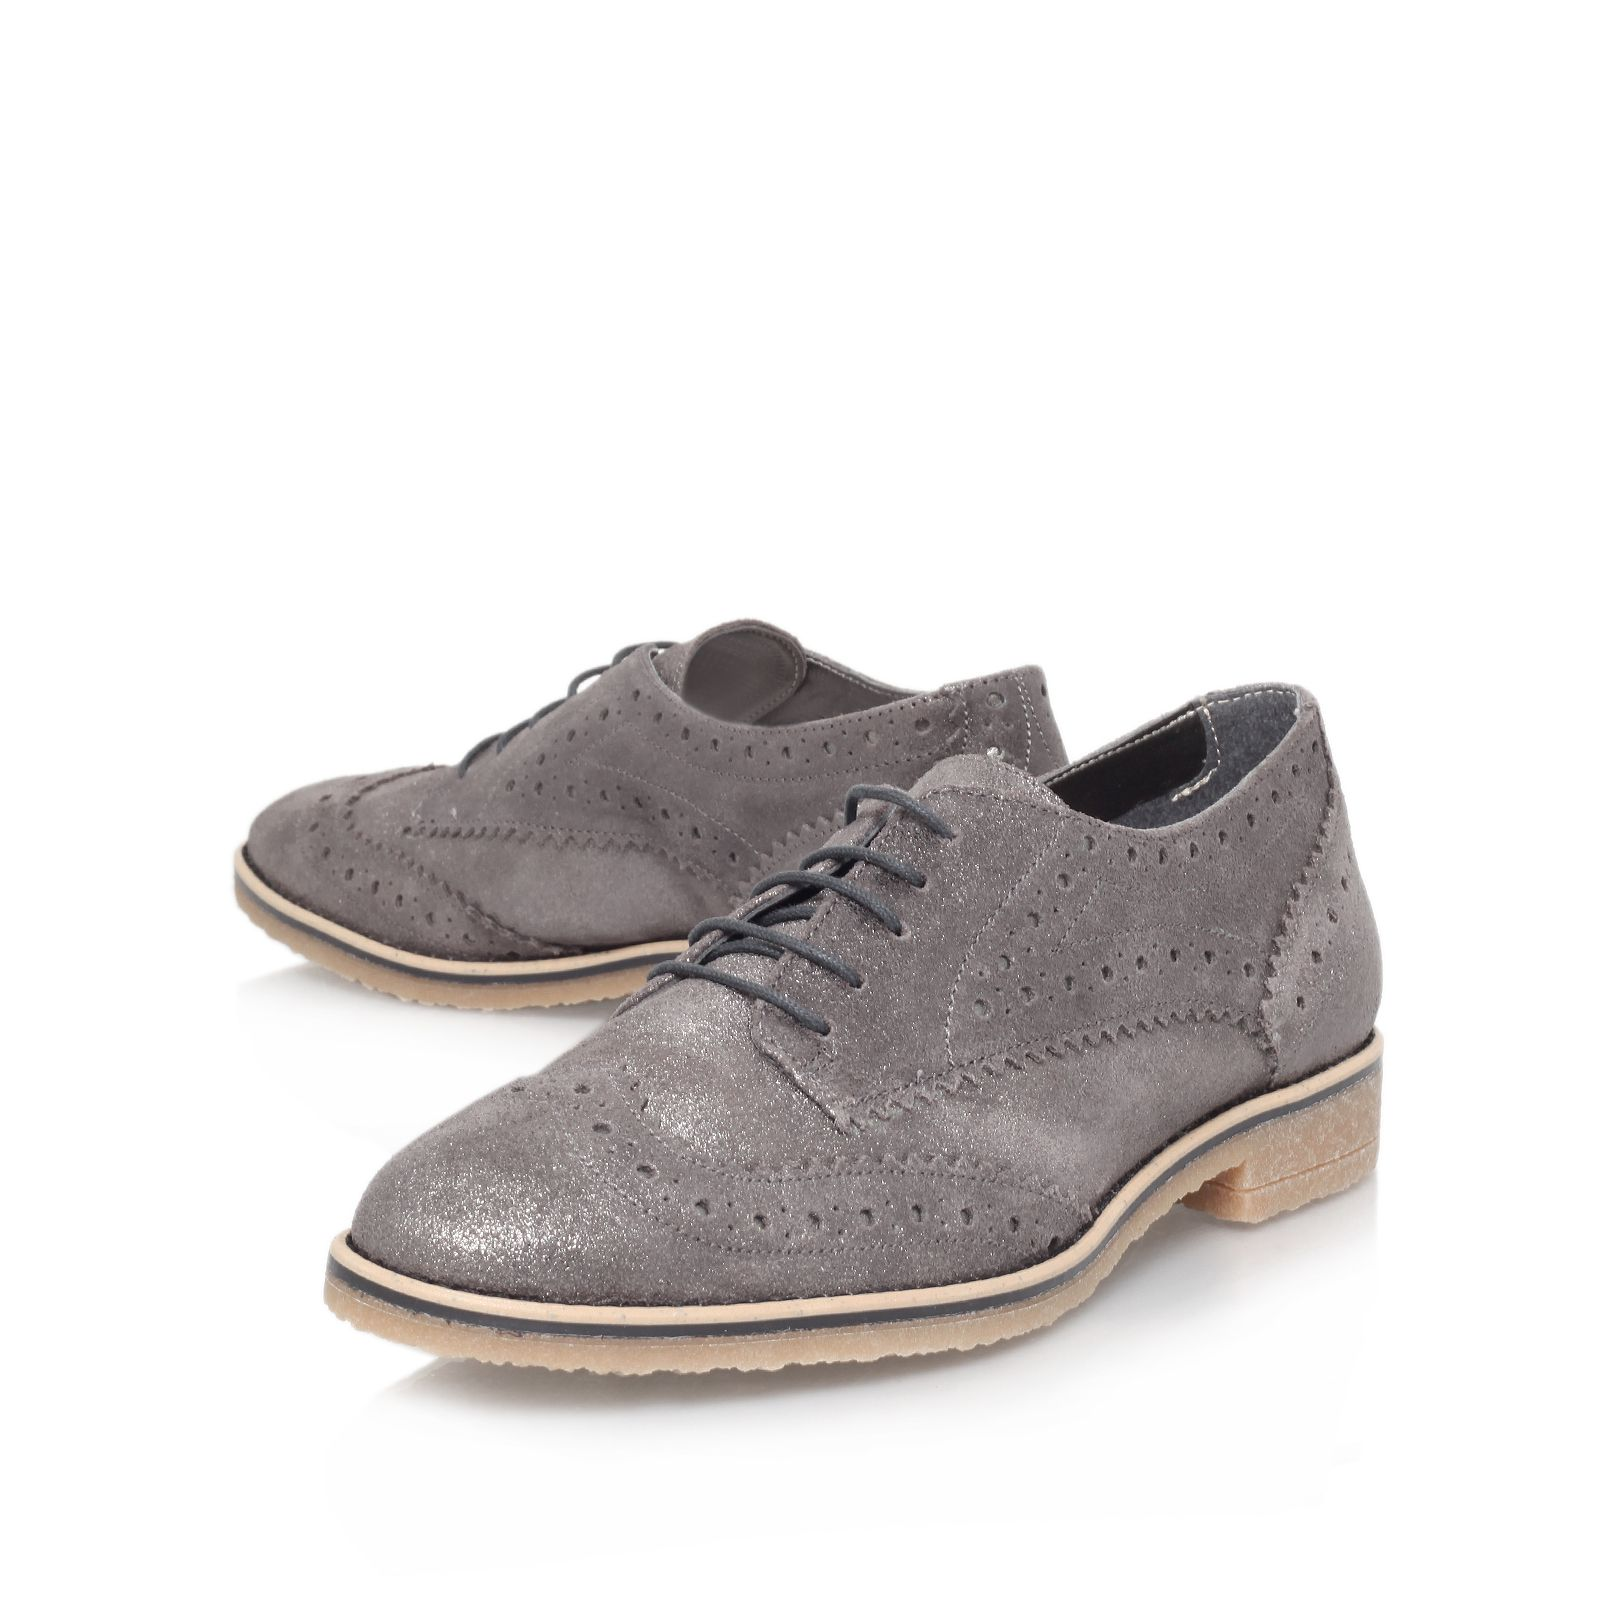 Loot flat brogue shoes